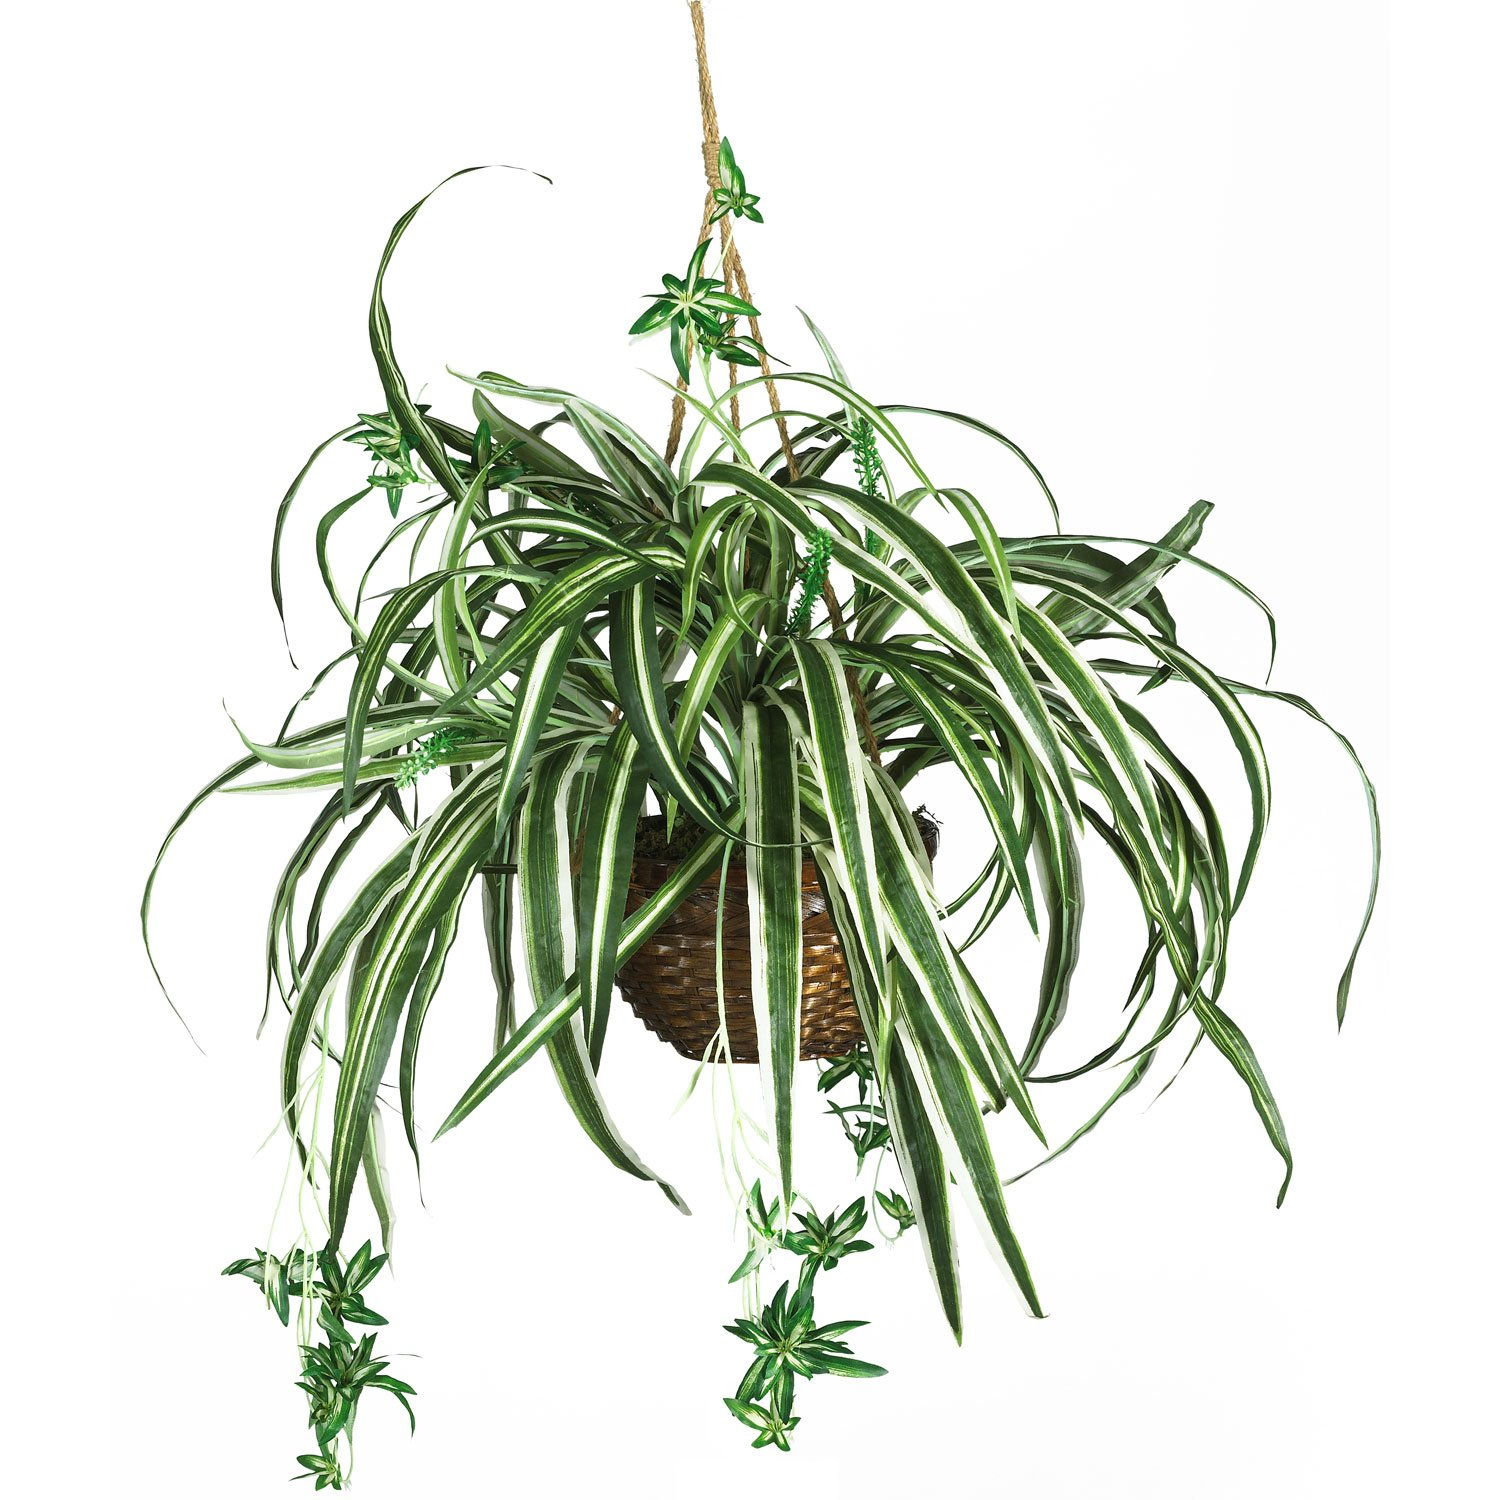 Figure 1: Hanging Spider Plant With Runners And Plantlets